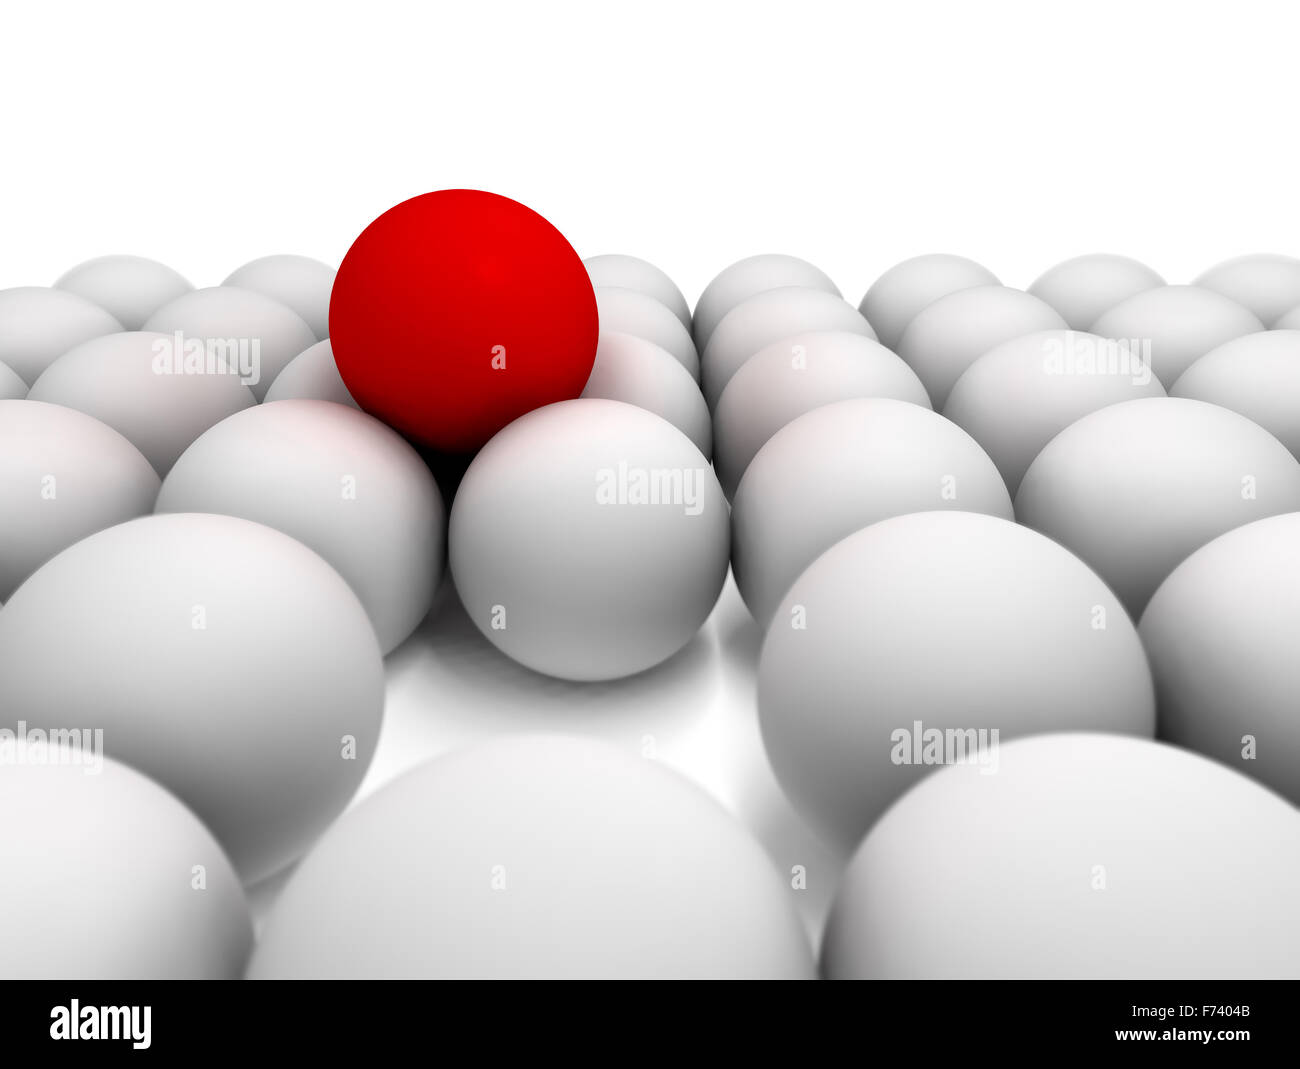 3d image of concept of success with balls - Stock Image